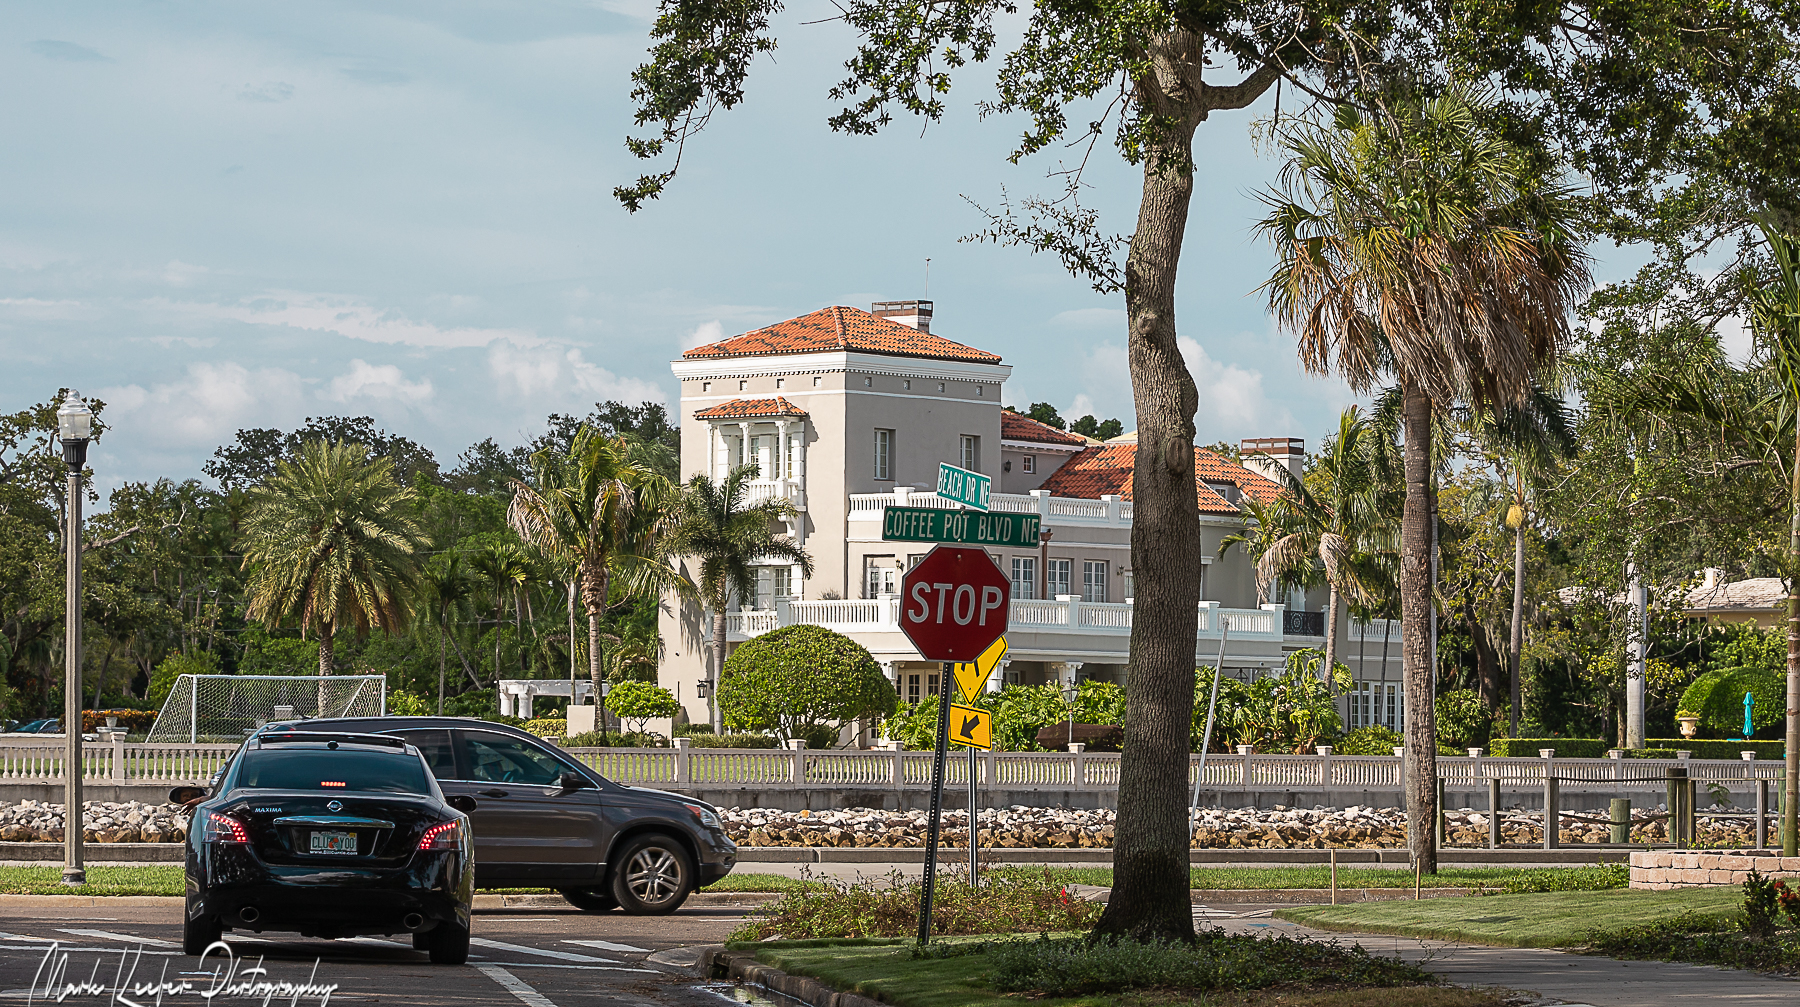 Coffee Pot Blvd and Beach Dr x1800 -.jpg